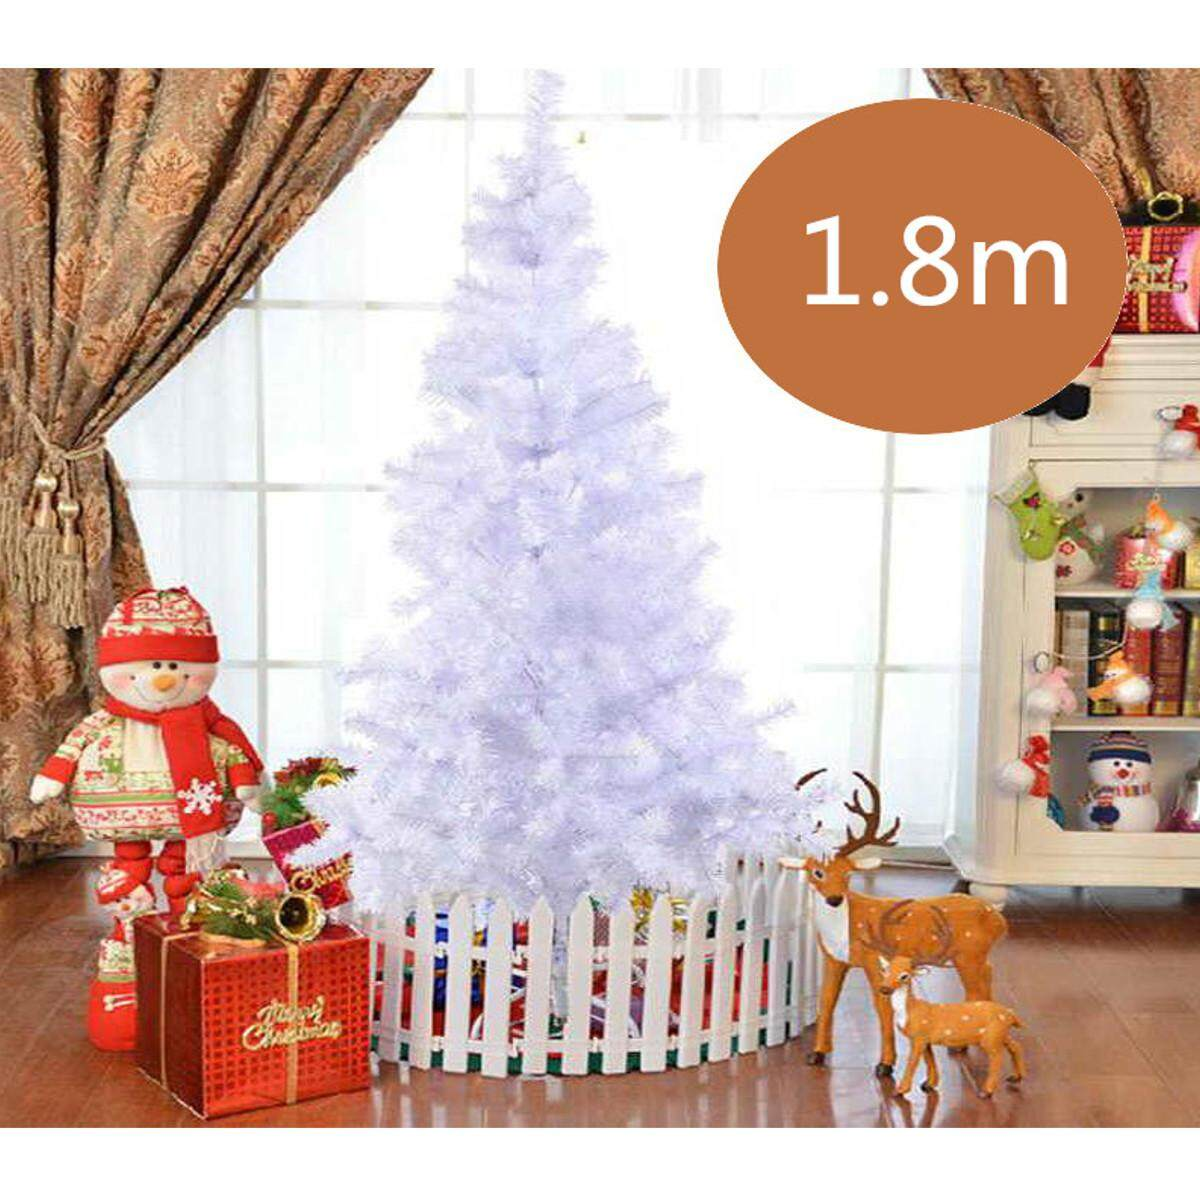 1.8m Pvc Artificial Christmas Tree Indoor Outdoor Xmas Party Decoration White By Glimmer.